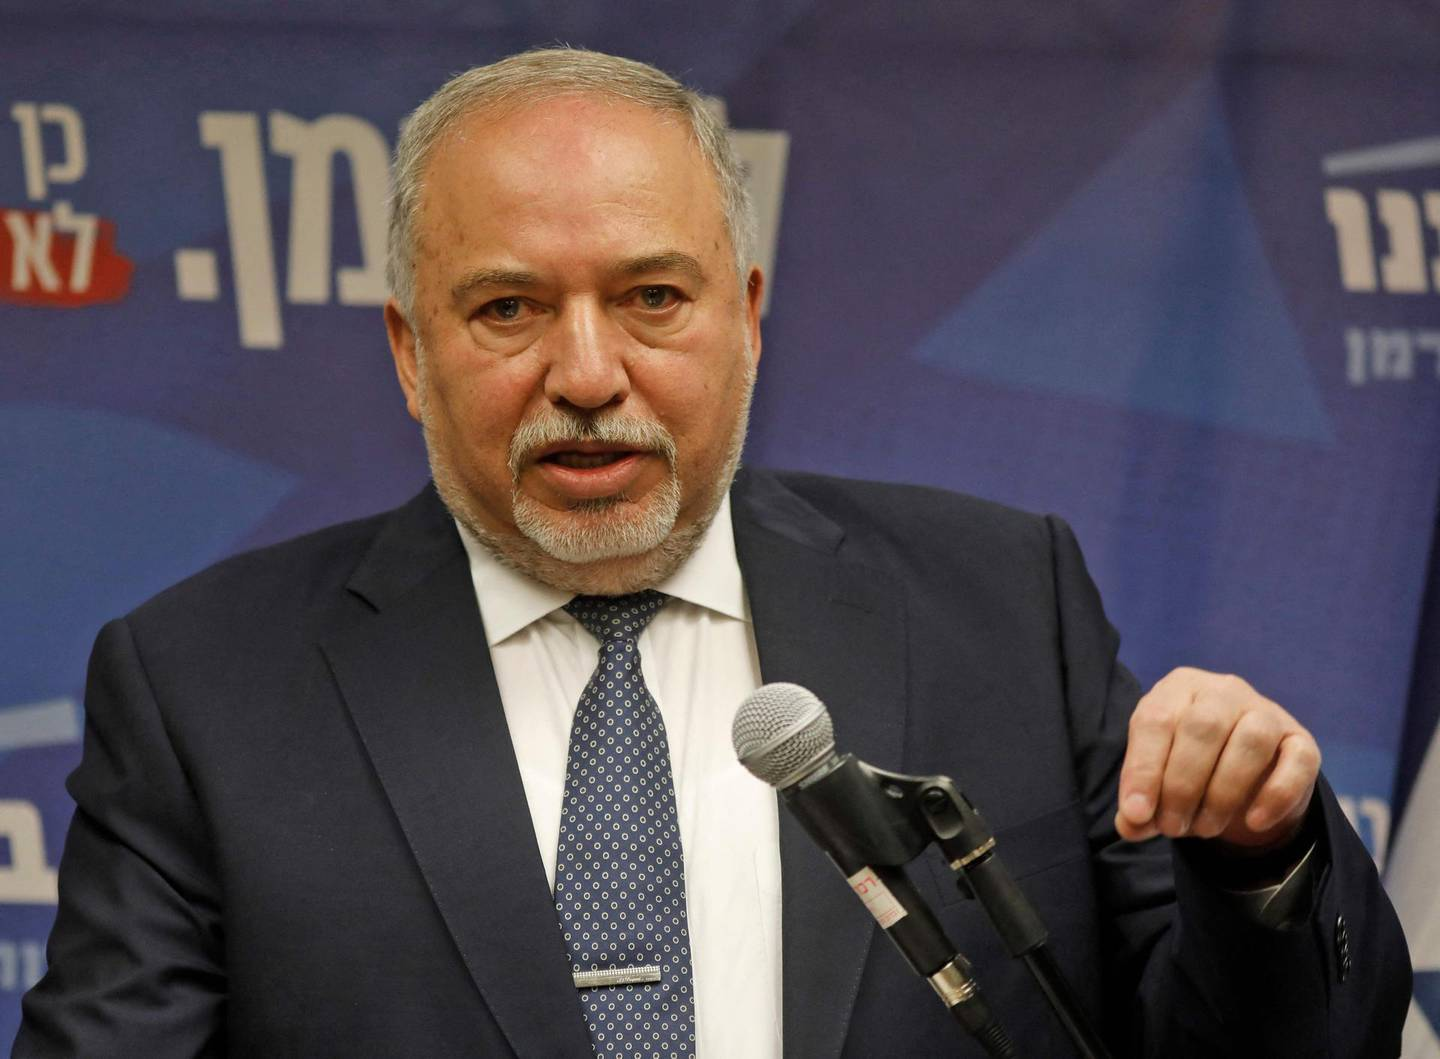 (FILES) In this file photo taken on November 20, 2019 Yisrael Beitenu's party head Avigdor Lieberman delivers a statement to the press on November 20, 2019 in Jerusalem as the deadline for Iserael's opposition to form Israeli government ends. A coalition government or new elections? Israeli Prime Minister Benjamin Netanyahu and rival Benny Gantz traded blame over faltering talks Wednesday ahead of a midnight deadline. Former military general Gantz has until 11:59 pm (2159 GMT) to cut a coalition deal, or the country will edge closer to holding a third round of elections in a year.  / AFP / MENAHEM KAHANA